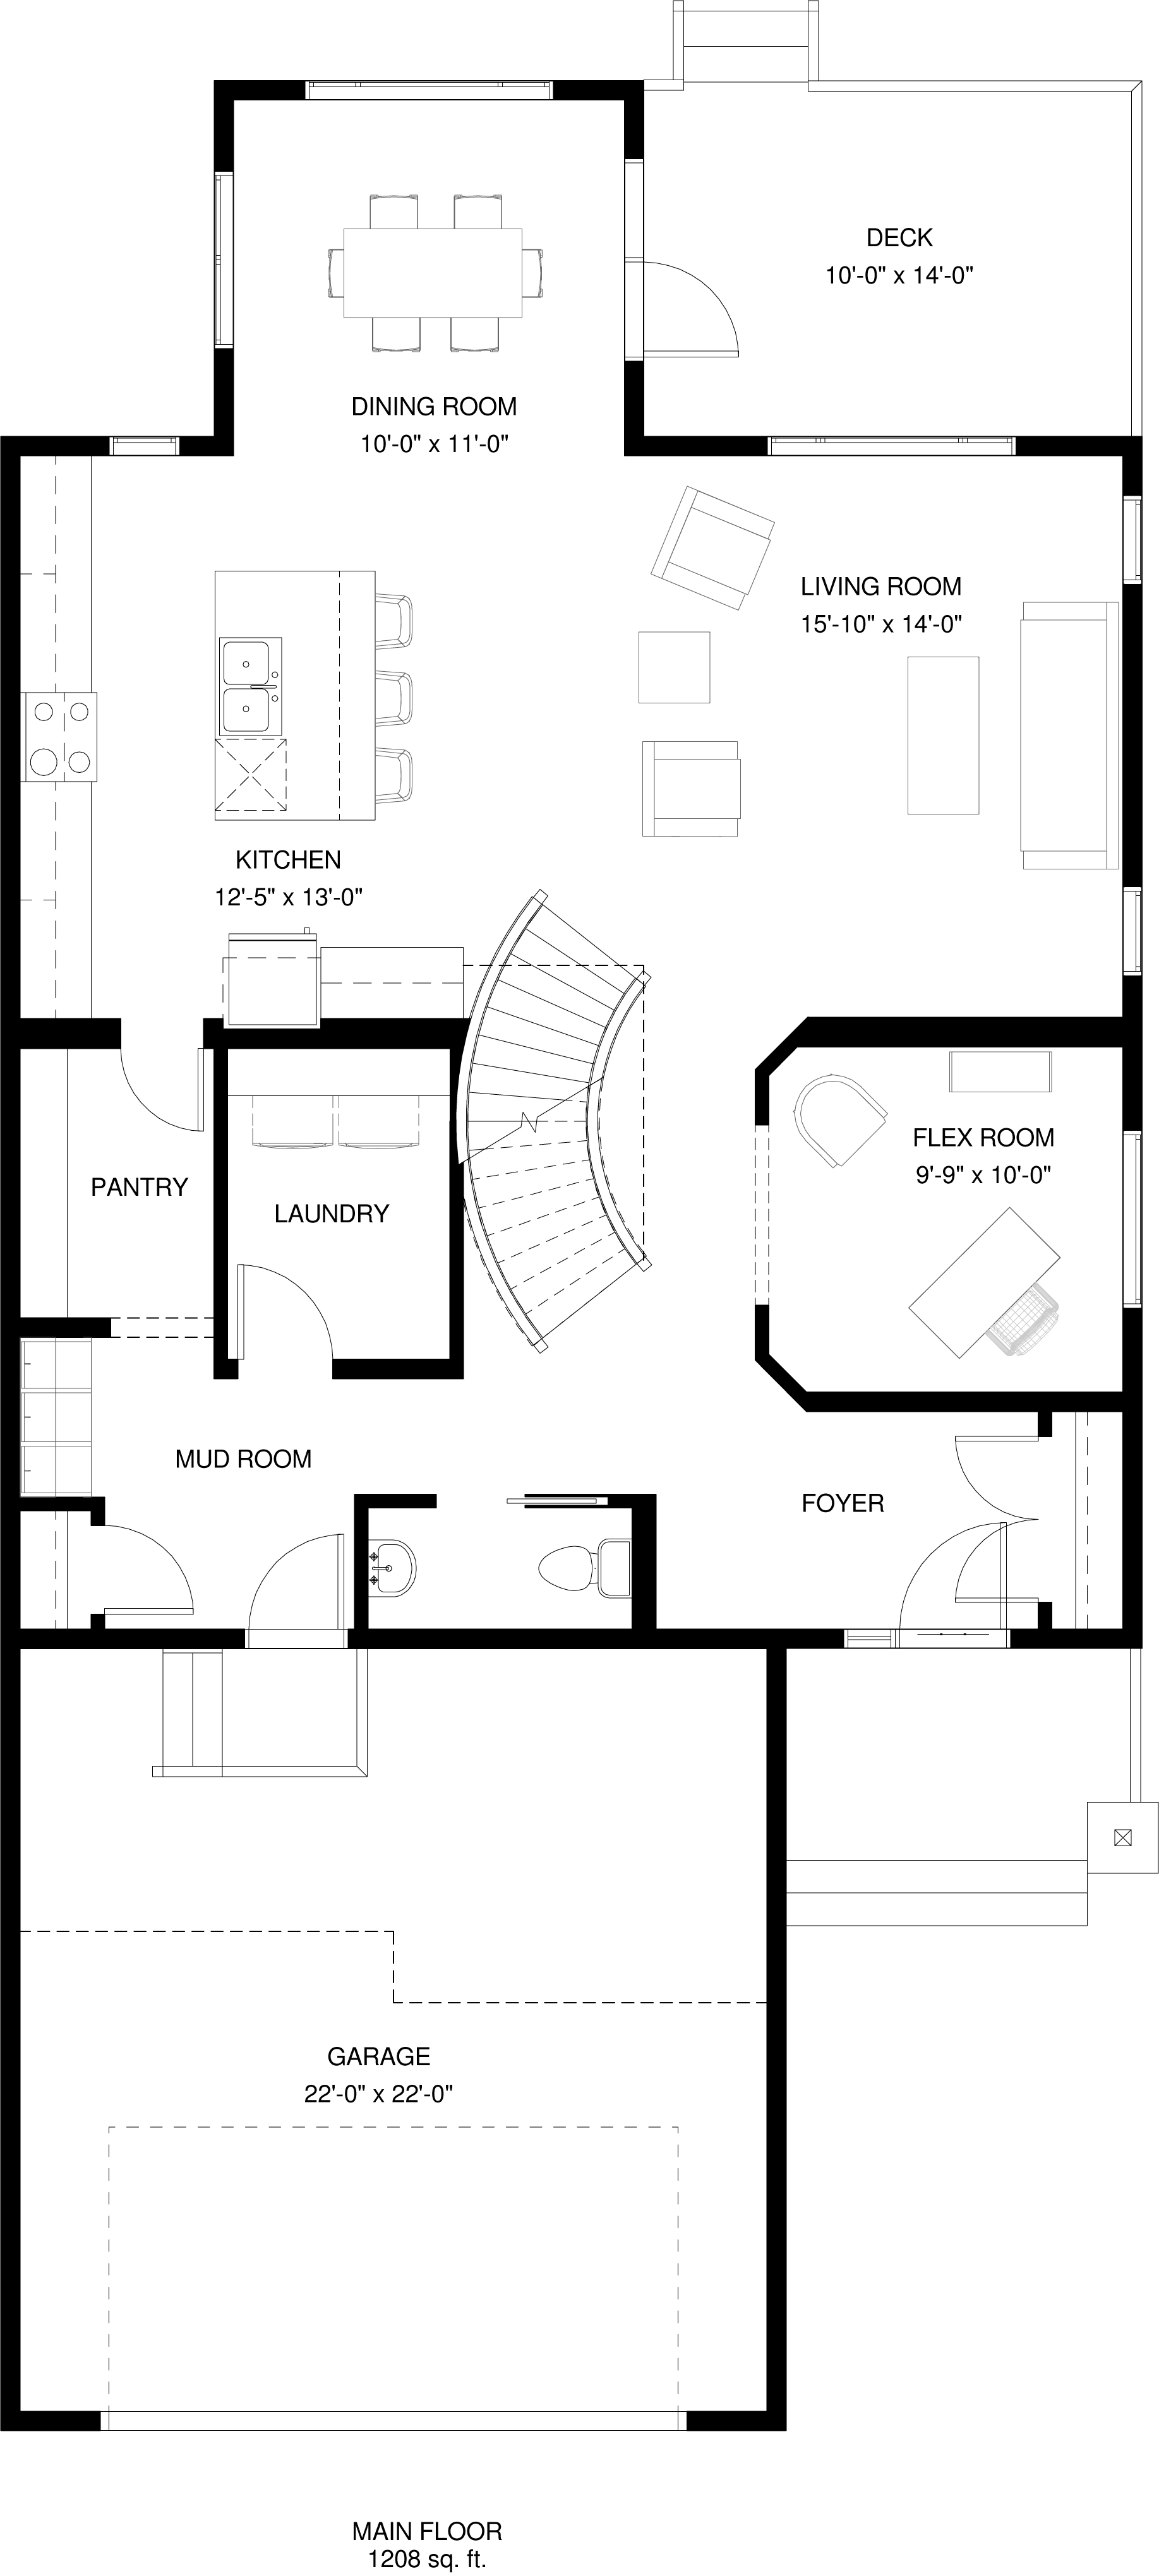 Main Floor   1206 sq ft